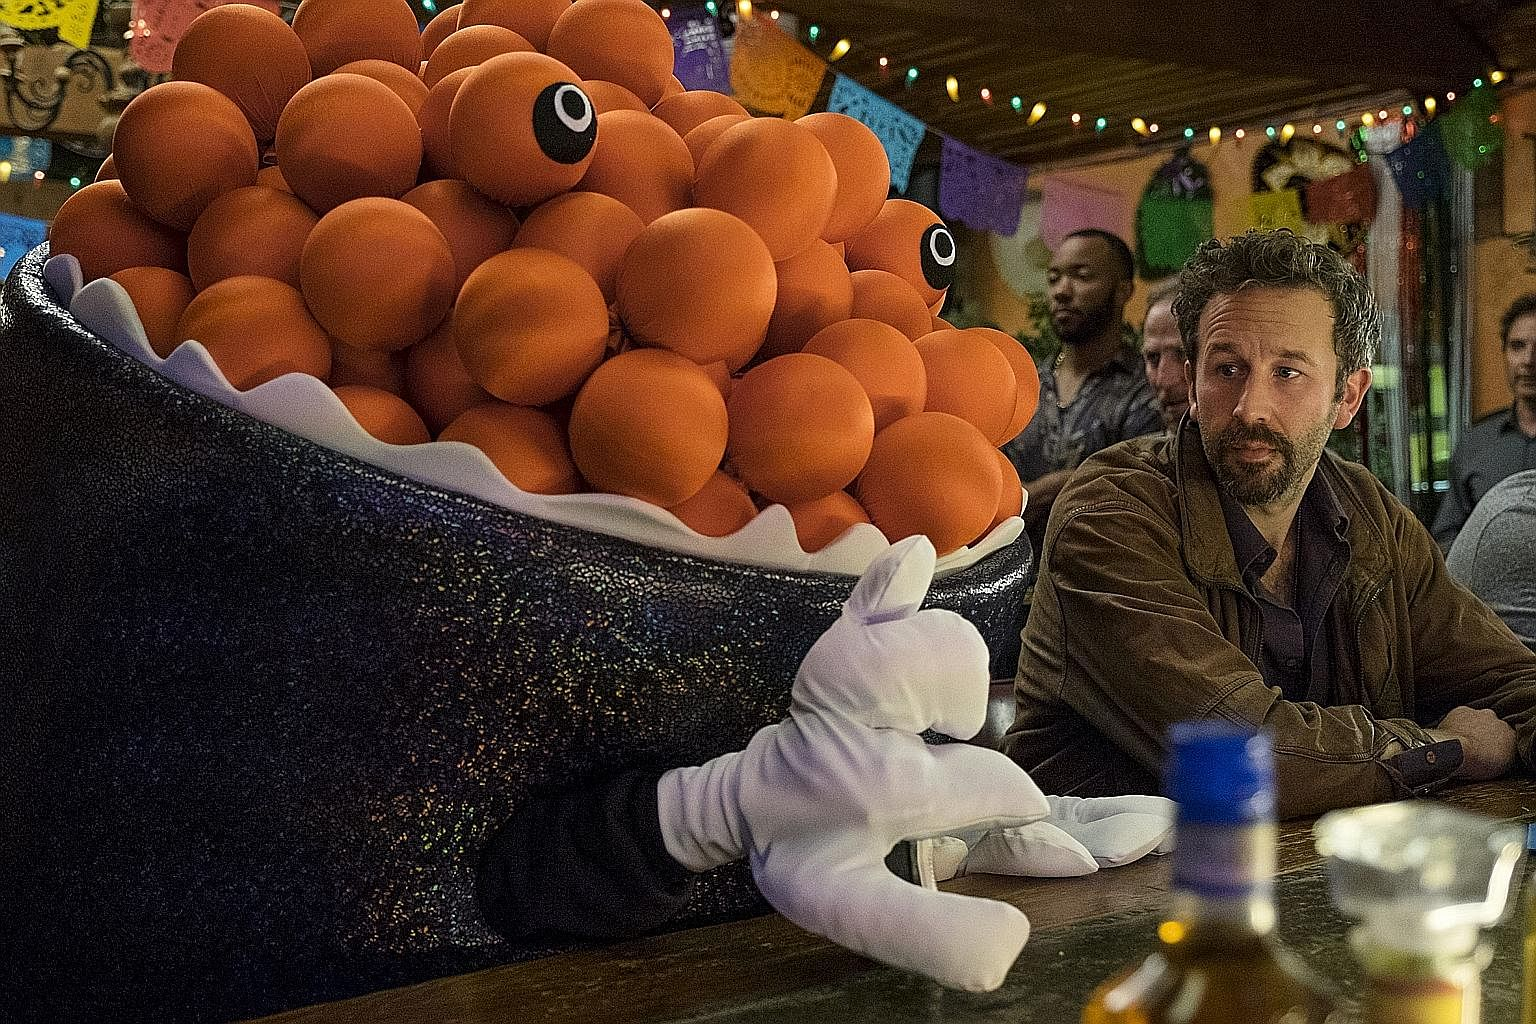 Chris O'Dowd stars in Mascots, which depicts the world of competitive sports mascots.